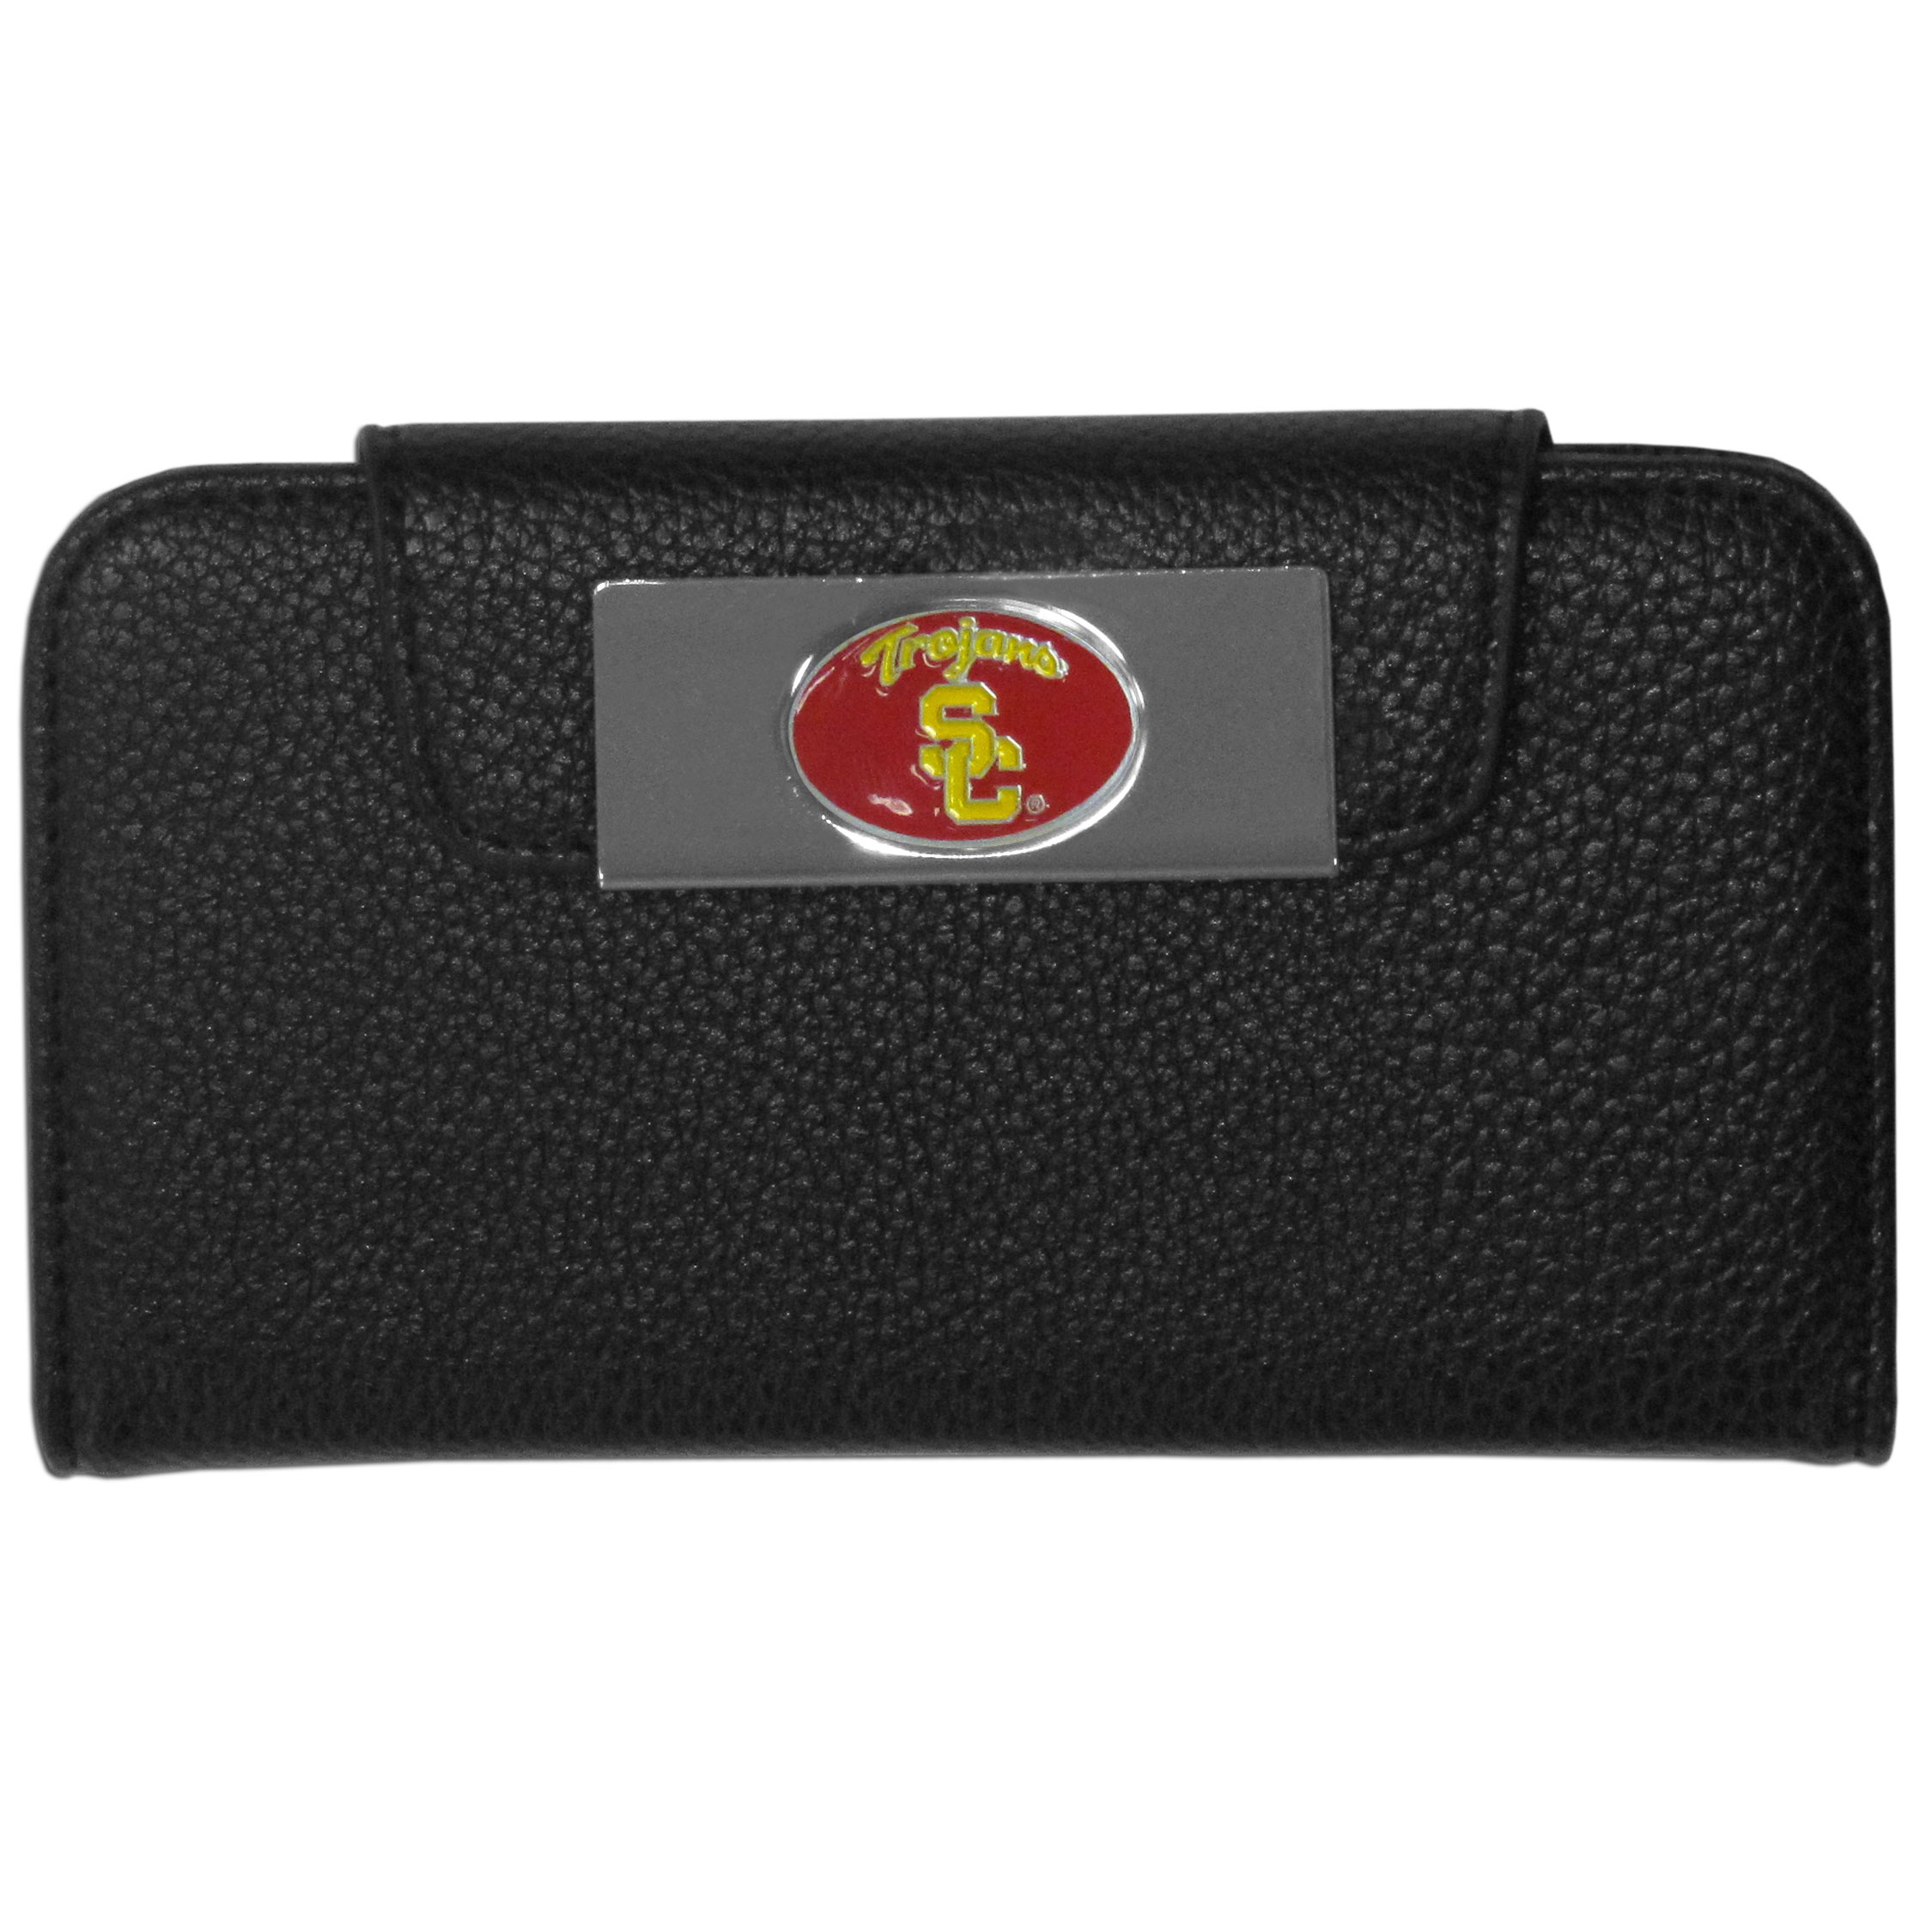 USC Trojans iPhone 5/5S Wallet Case - This new & wildly popular case is ideal for those who like to travel light! The stylish case has an inner hard shell that securely holds your phone while allowing complete access to the phone's functionality. The flip cover has slots for credit cards, business cards and identification. The magnetic flip cover has a metal USC Trojans emblem on a high polish chrome backing. Fits the iPhone 5/5S